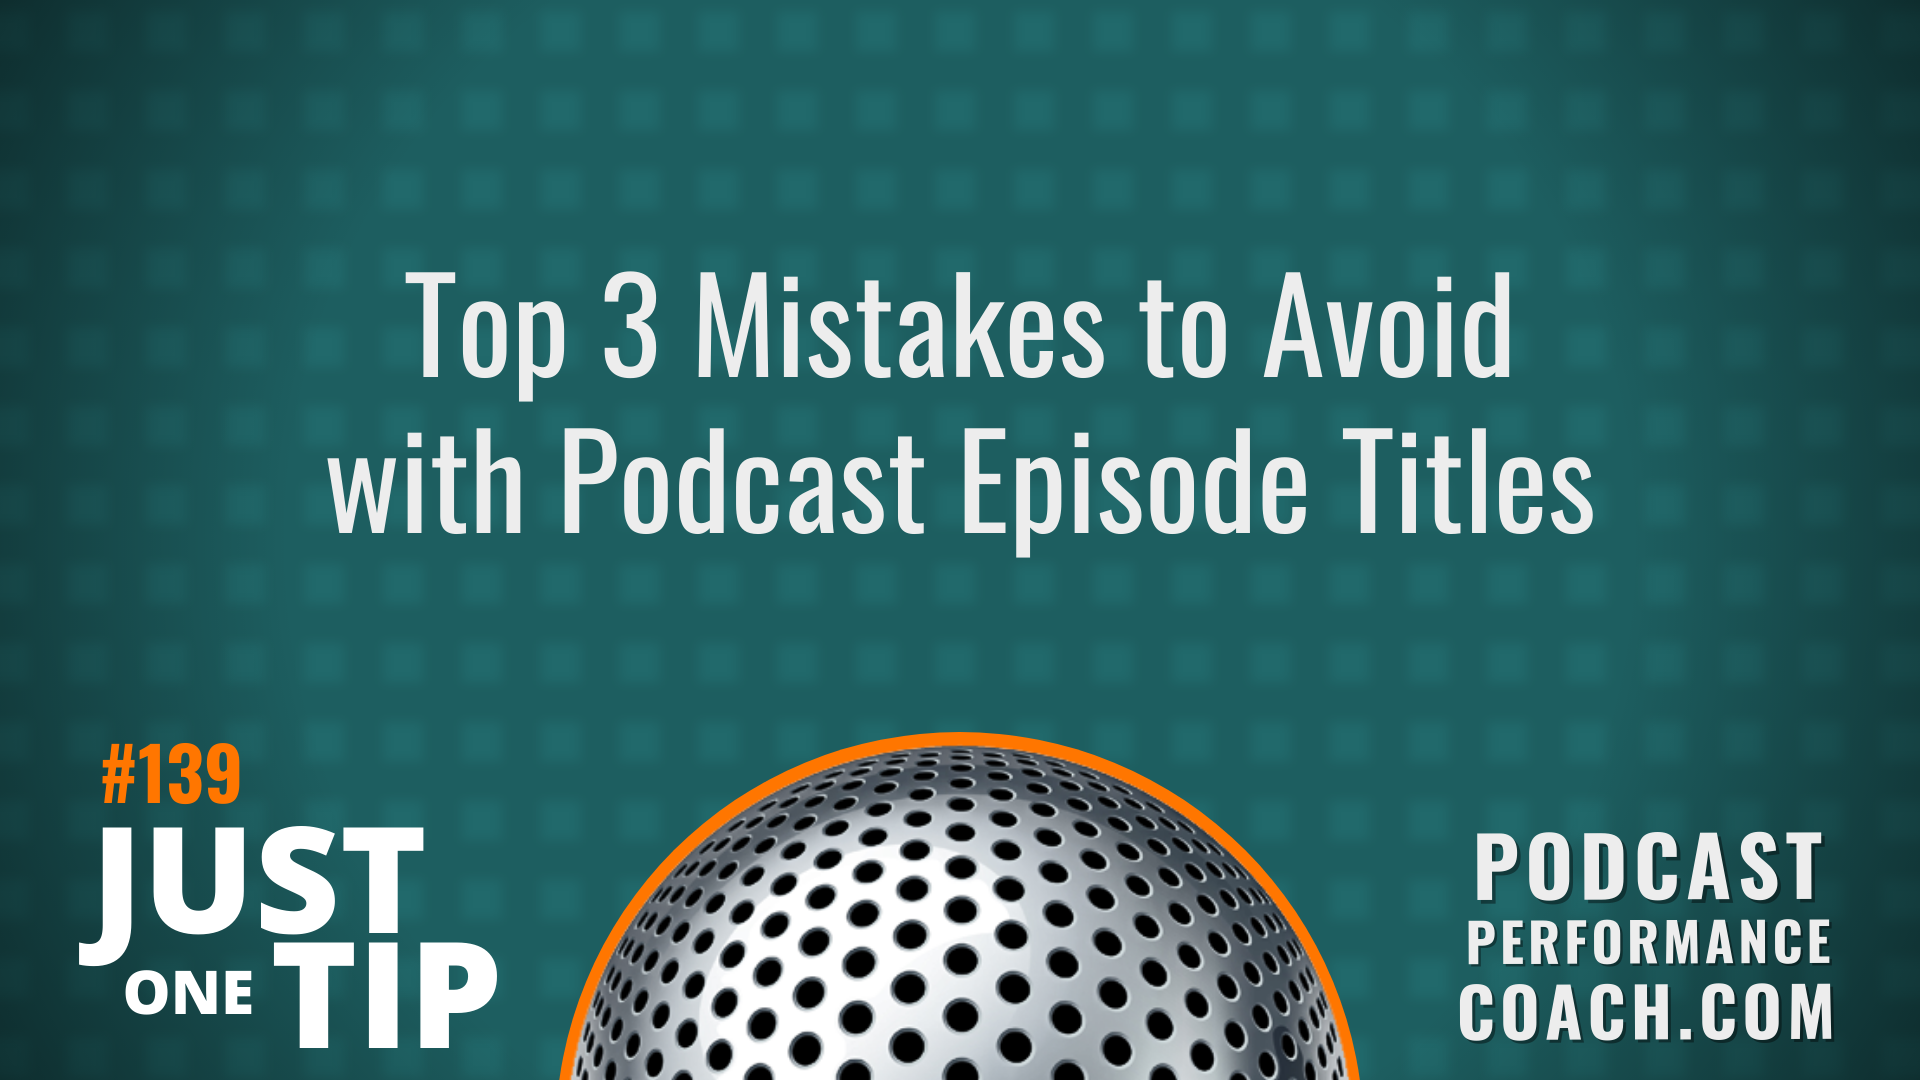 139 Top 3 Mistakes to Avoid with Podcast Episode Titles